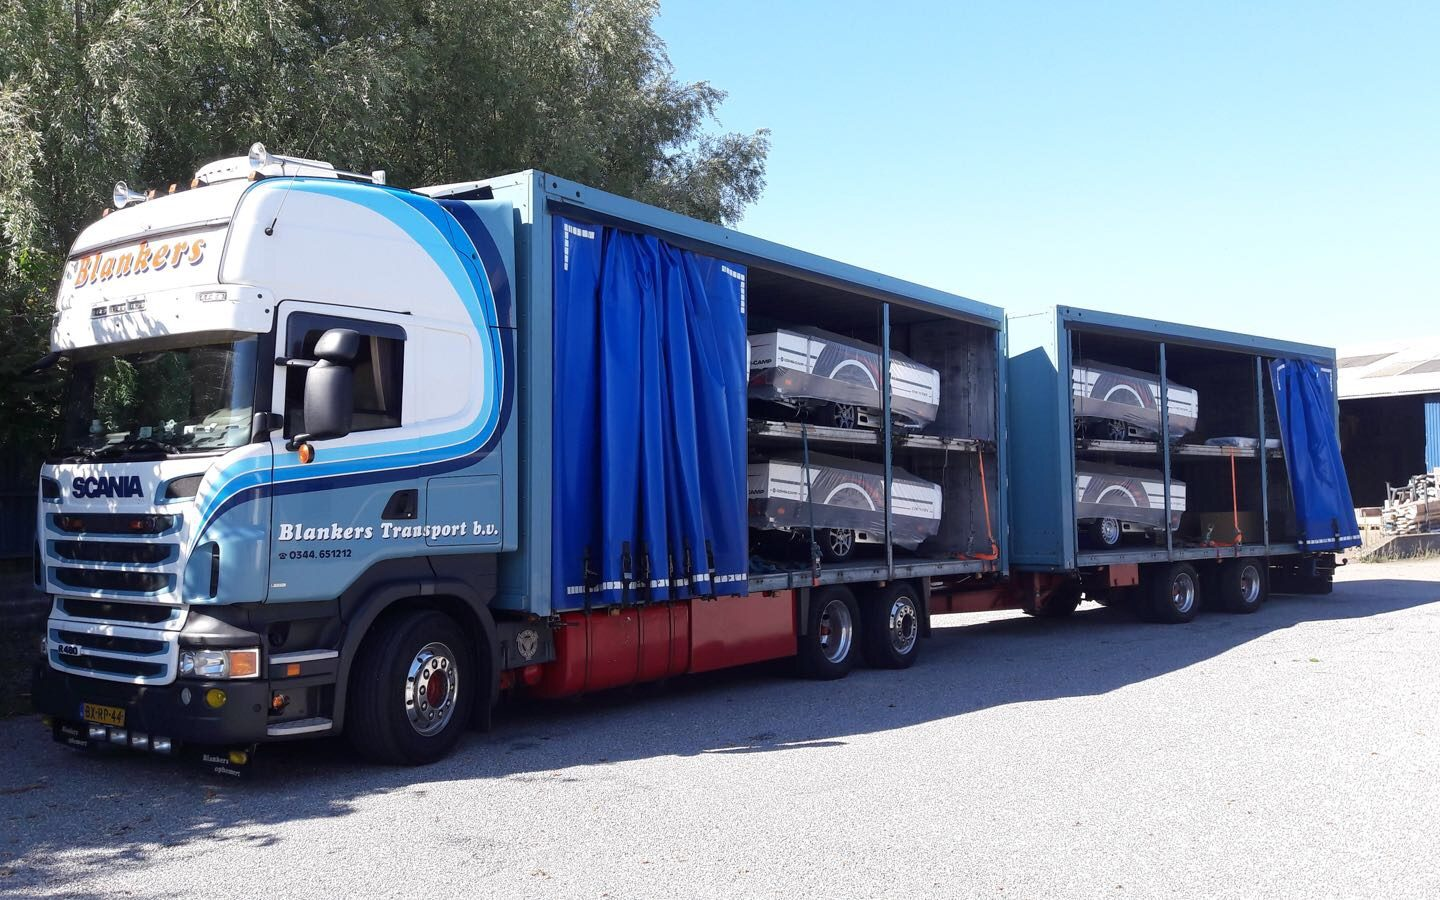 Save costs and maximize space with double deck trailer transport